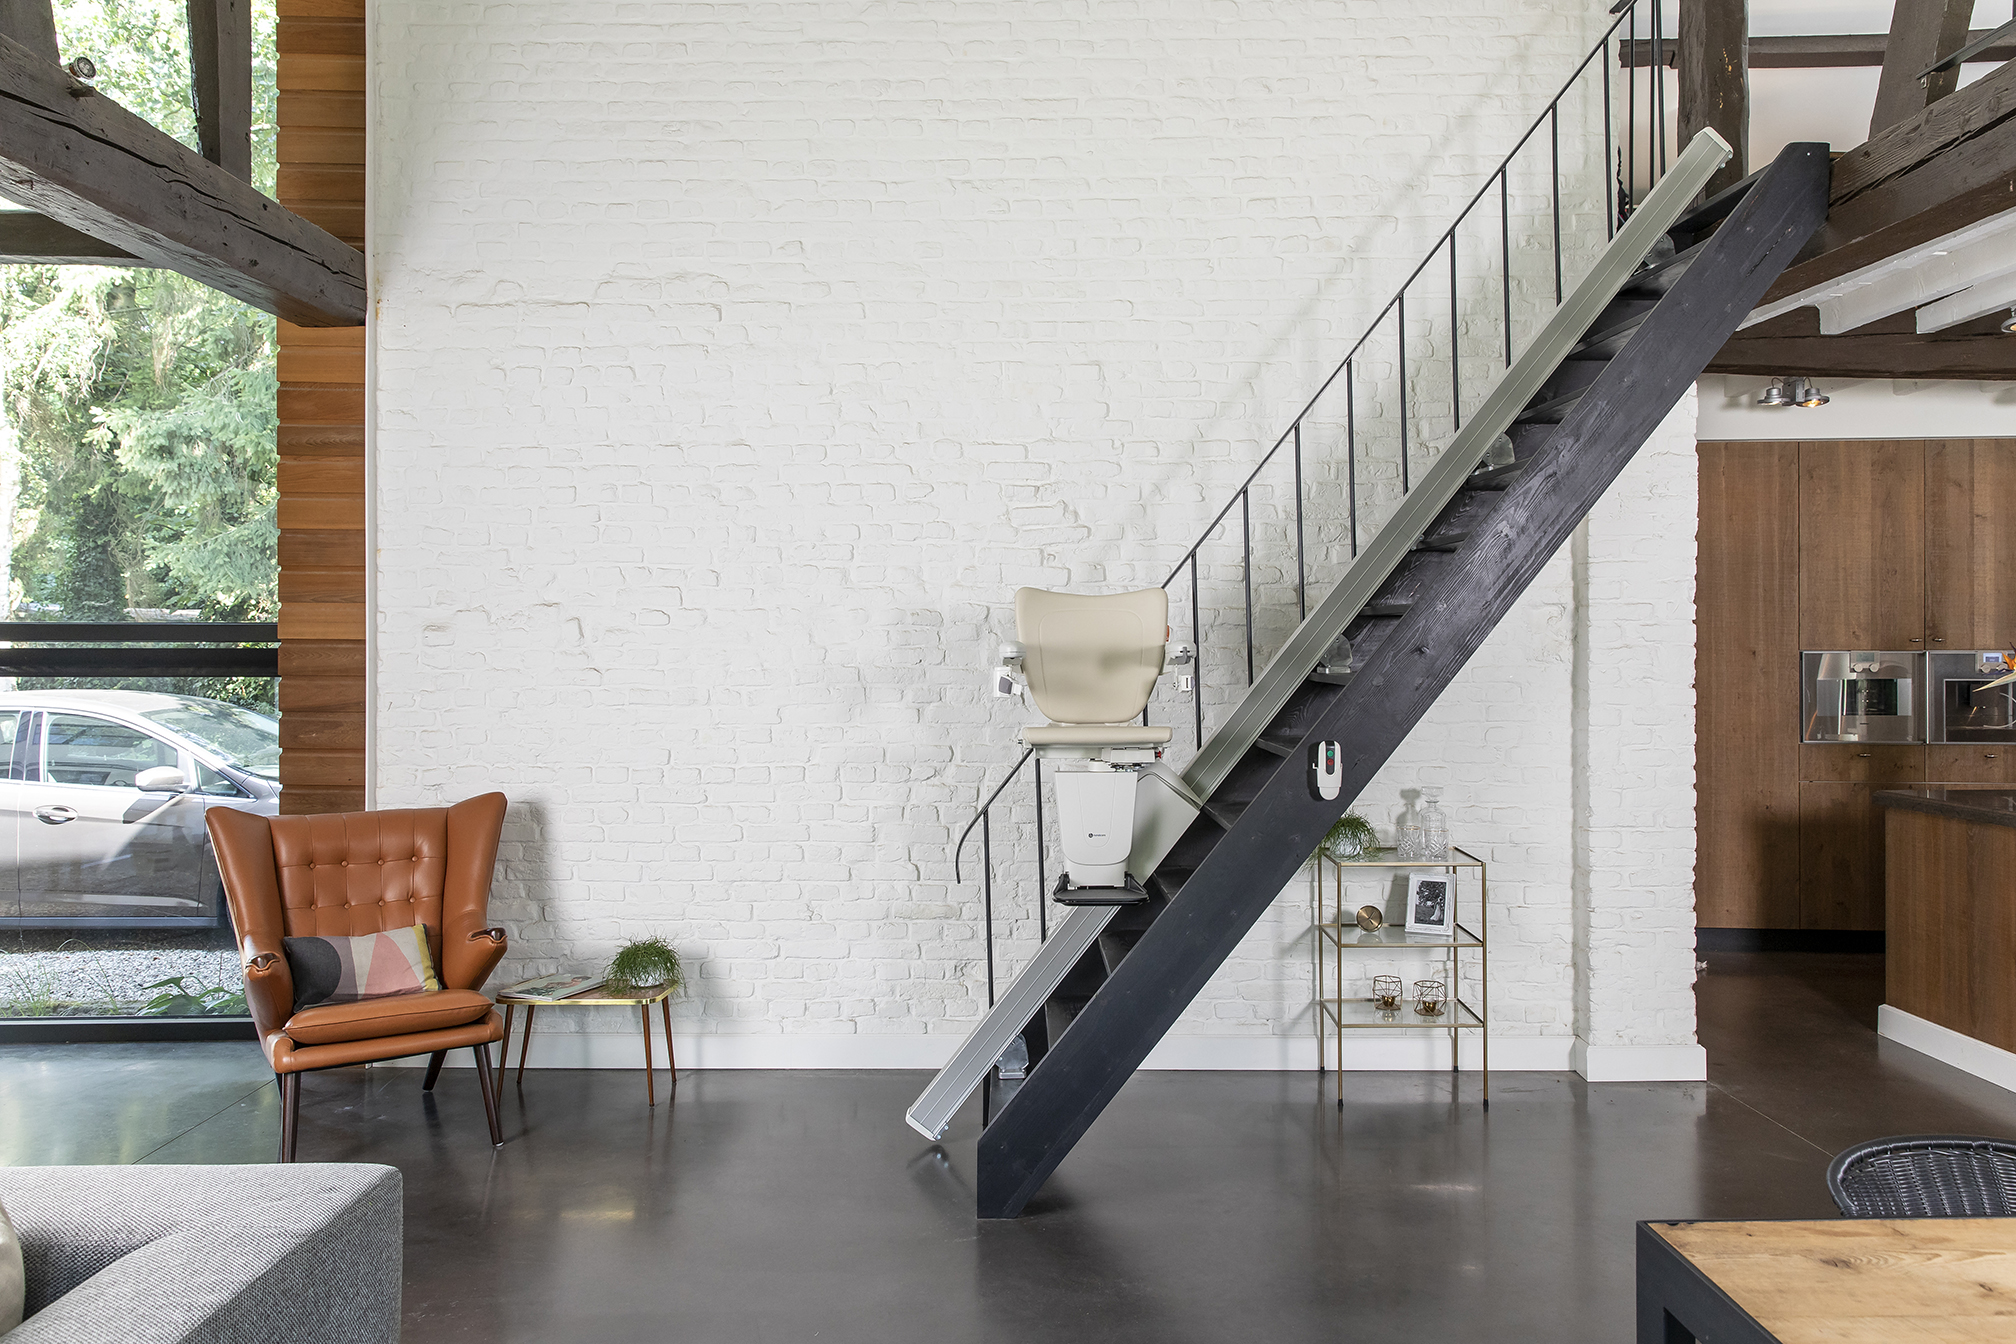 Handicare 1100 straight Stairlift on steel staircase